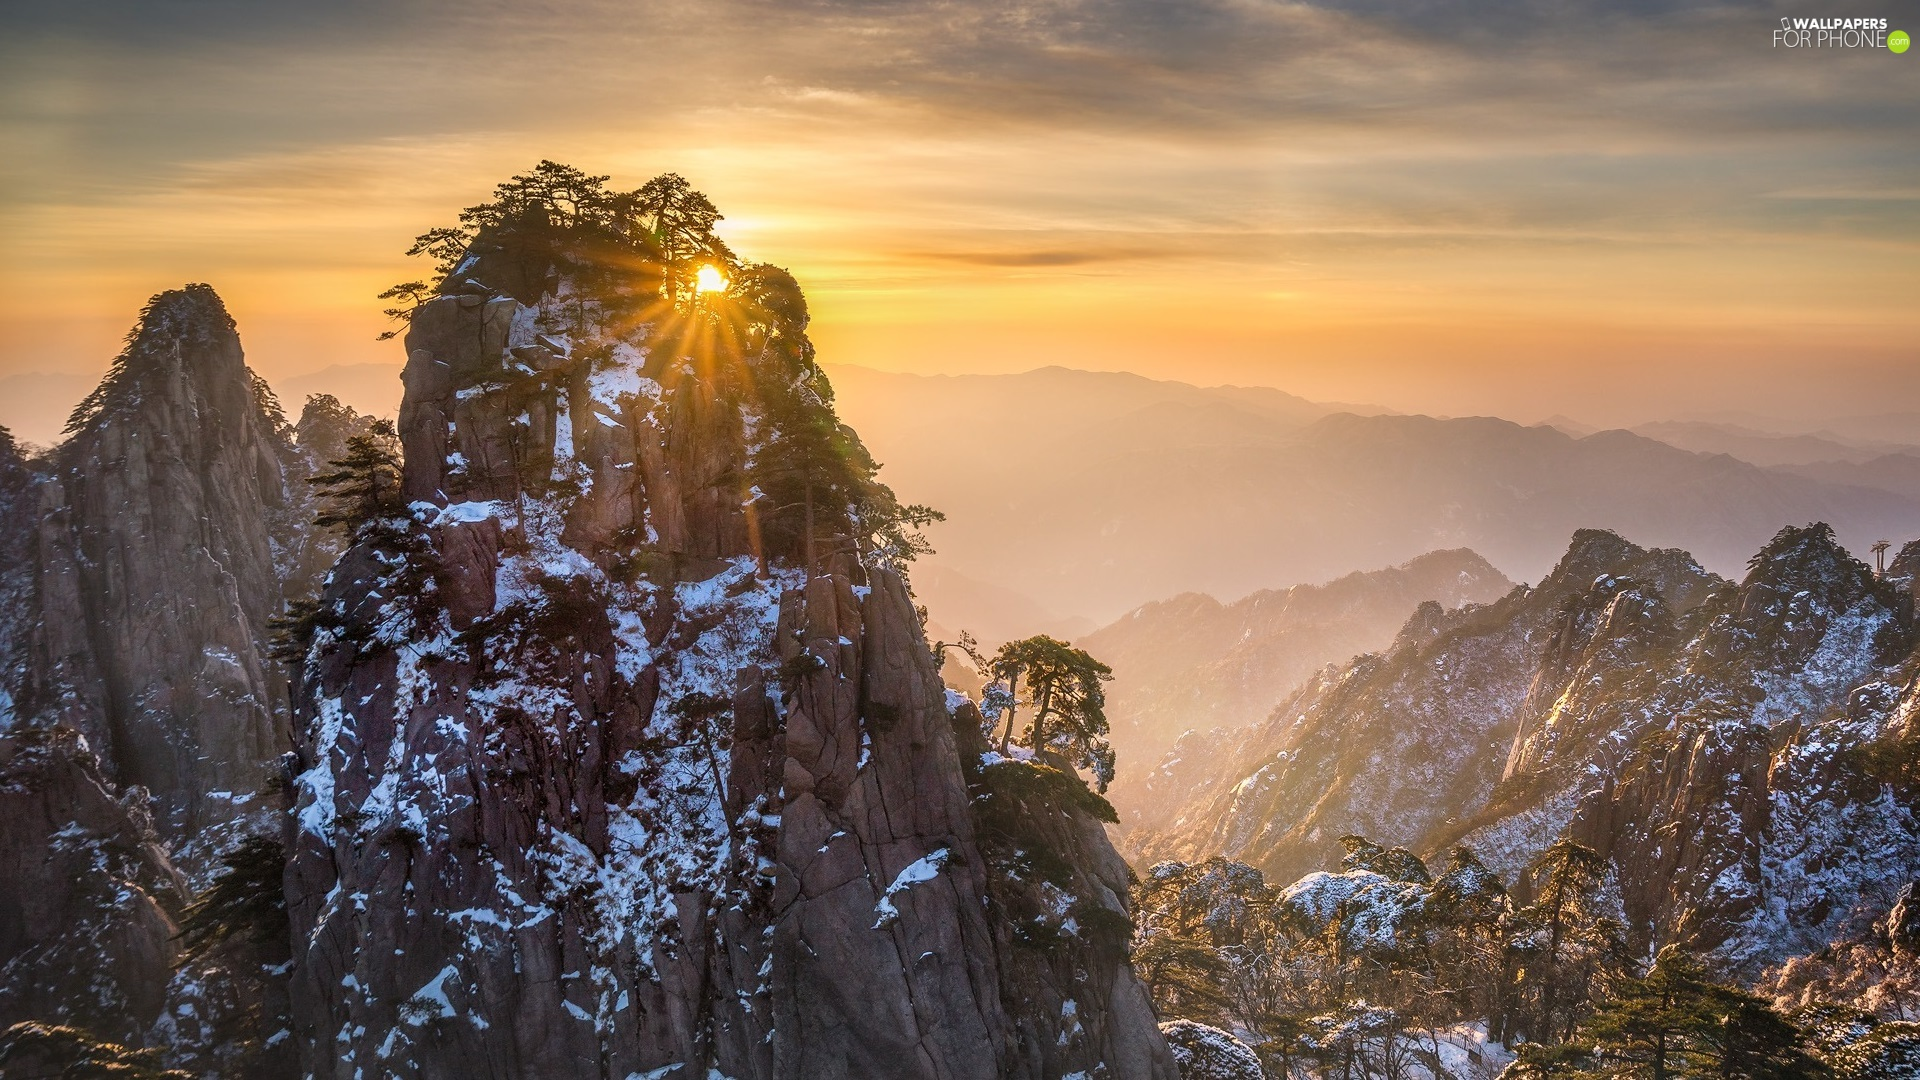 trees, Mountains, Fog, Sunrise, viewes, rocks